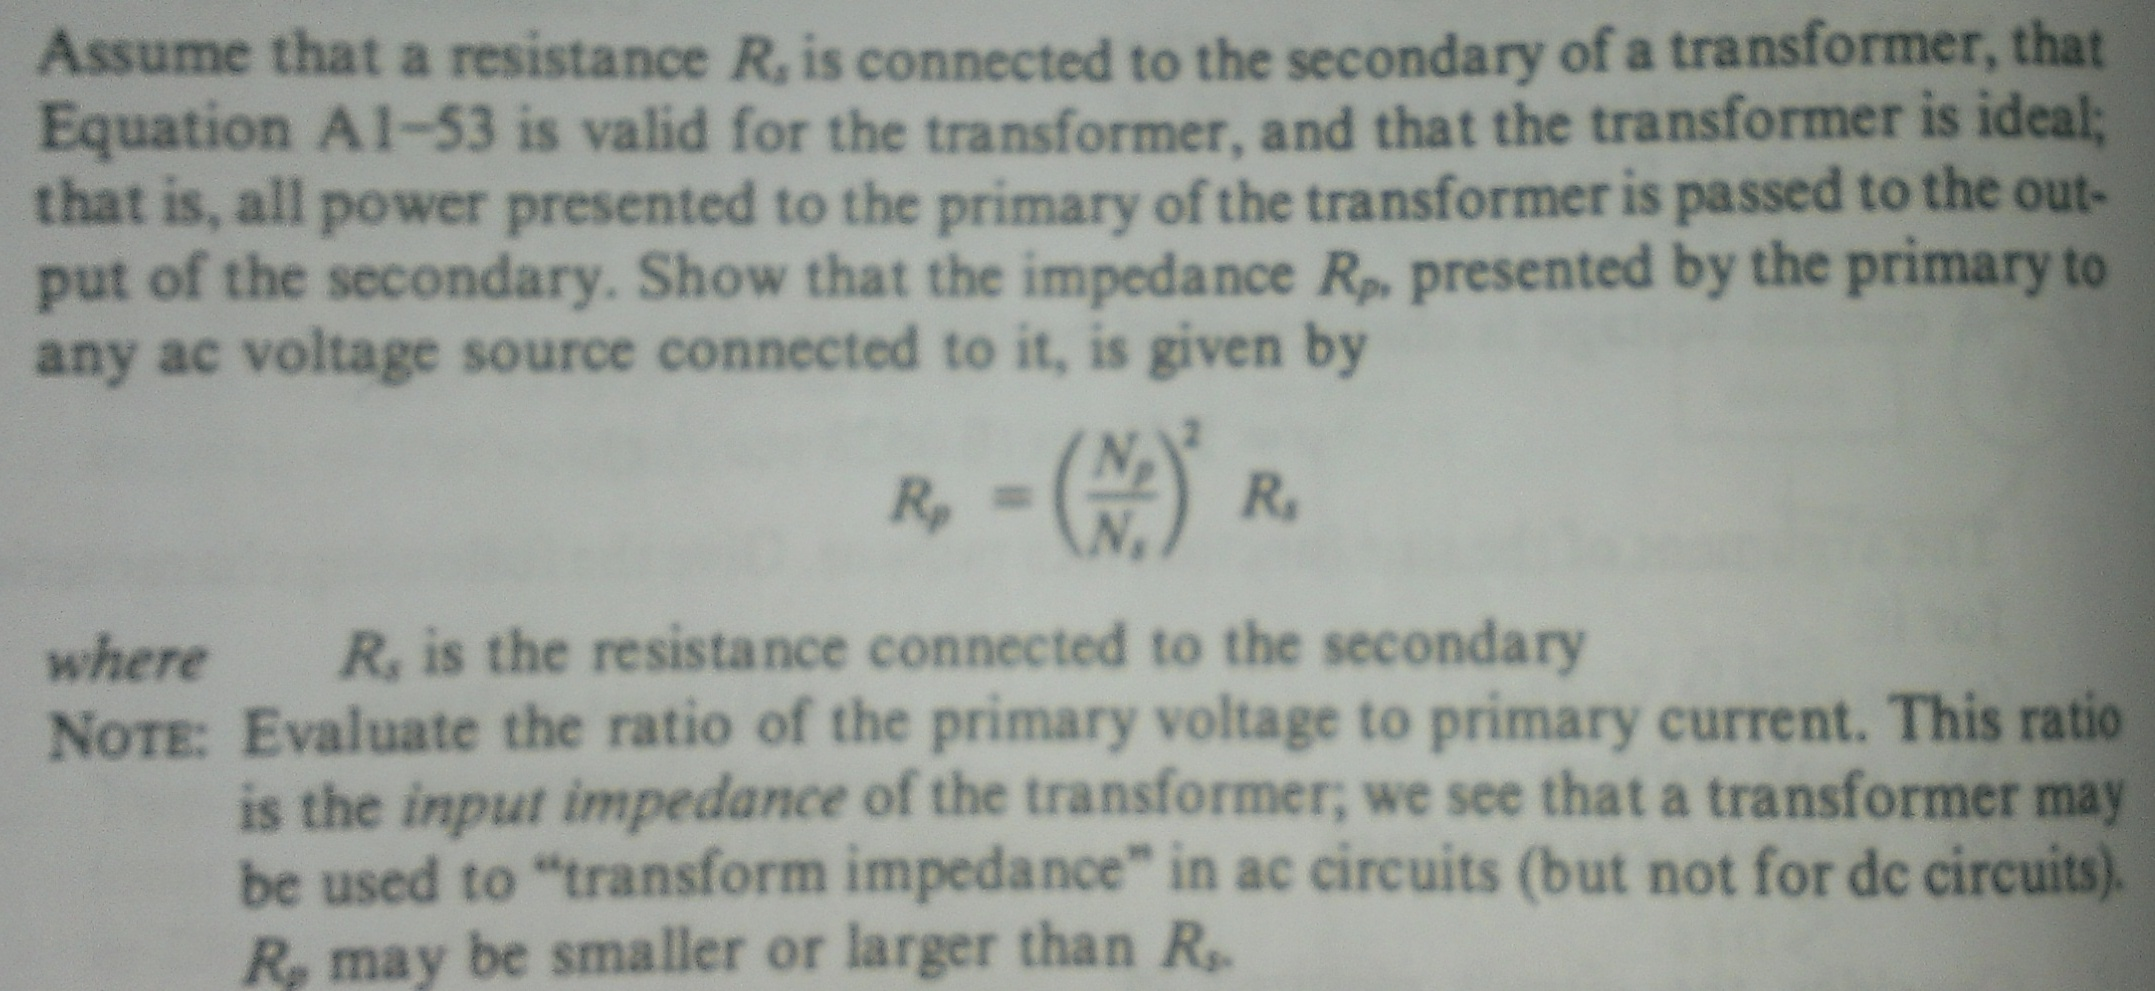 Assume that a resistance R, it connected to the se